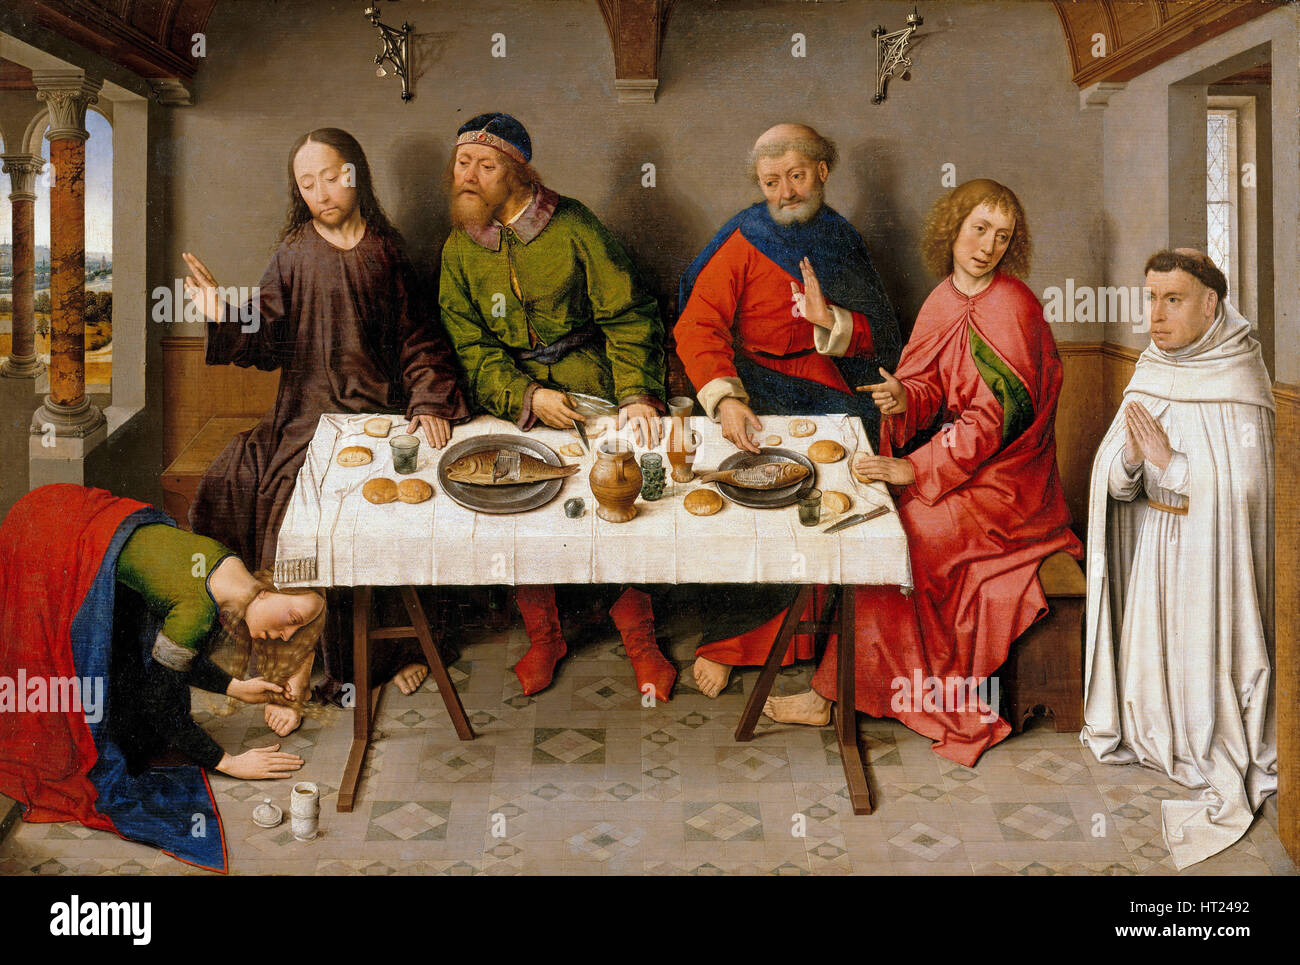 Christ in the House of Simon the Pharisee, c. 1450. Artist: Bouts, Dirk (1410/20-1475) Stock Photo